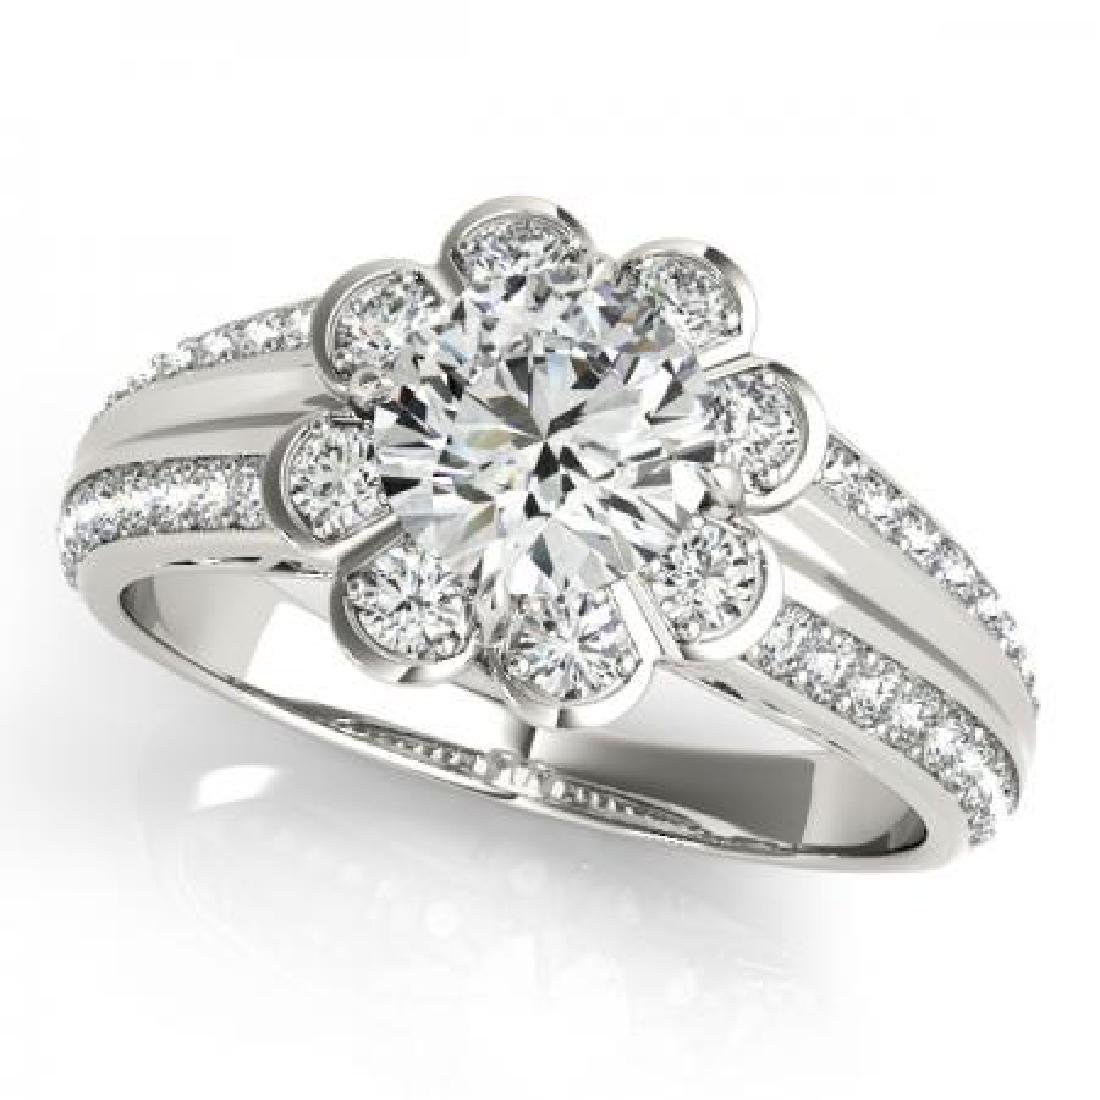 CERTIFIED PLATINUM 1.18 CT G-H/VS-SI1 DIAMOND HALO ENGA